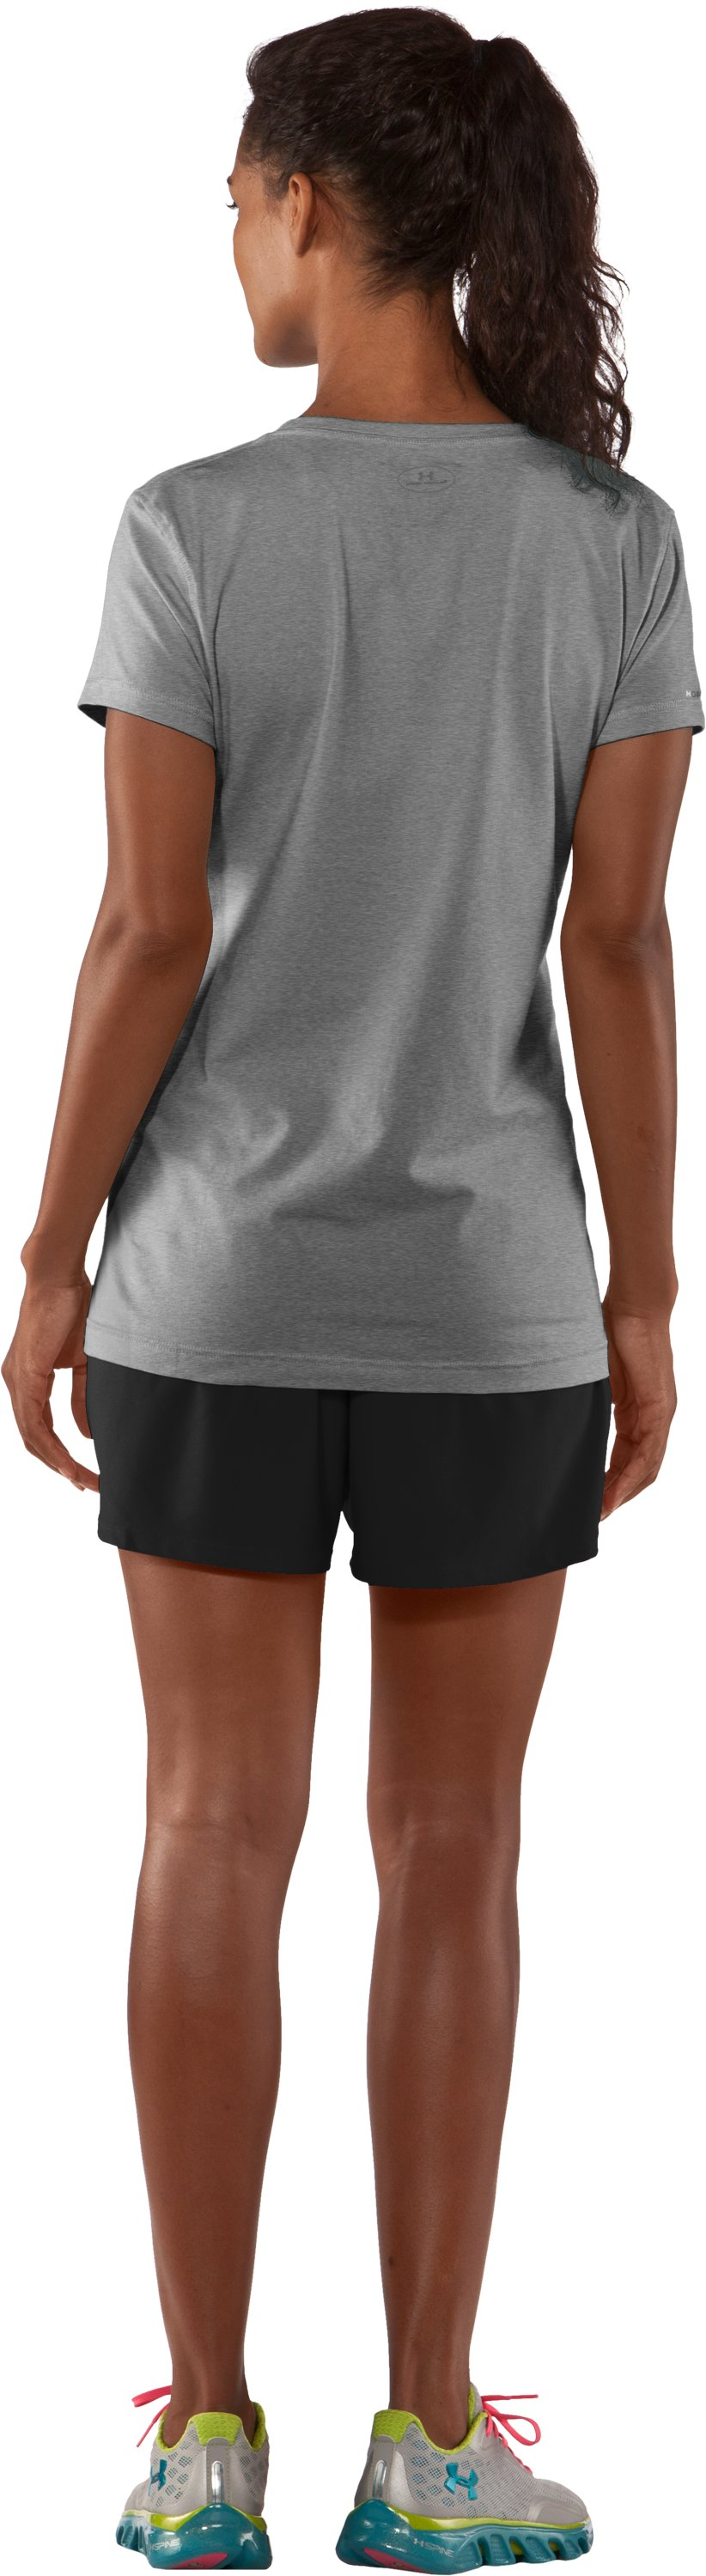 Women's Charged Cotton® Sassy Scoop T-Shirt, True Gray Heather, Back